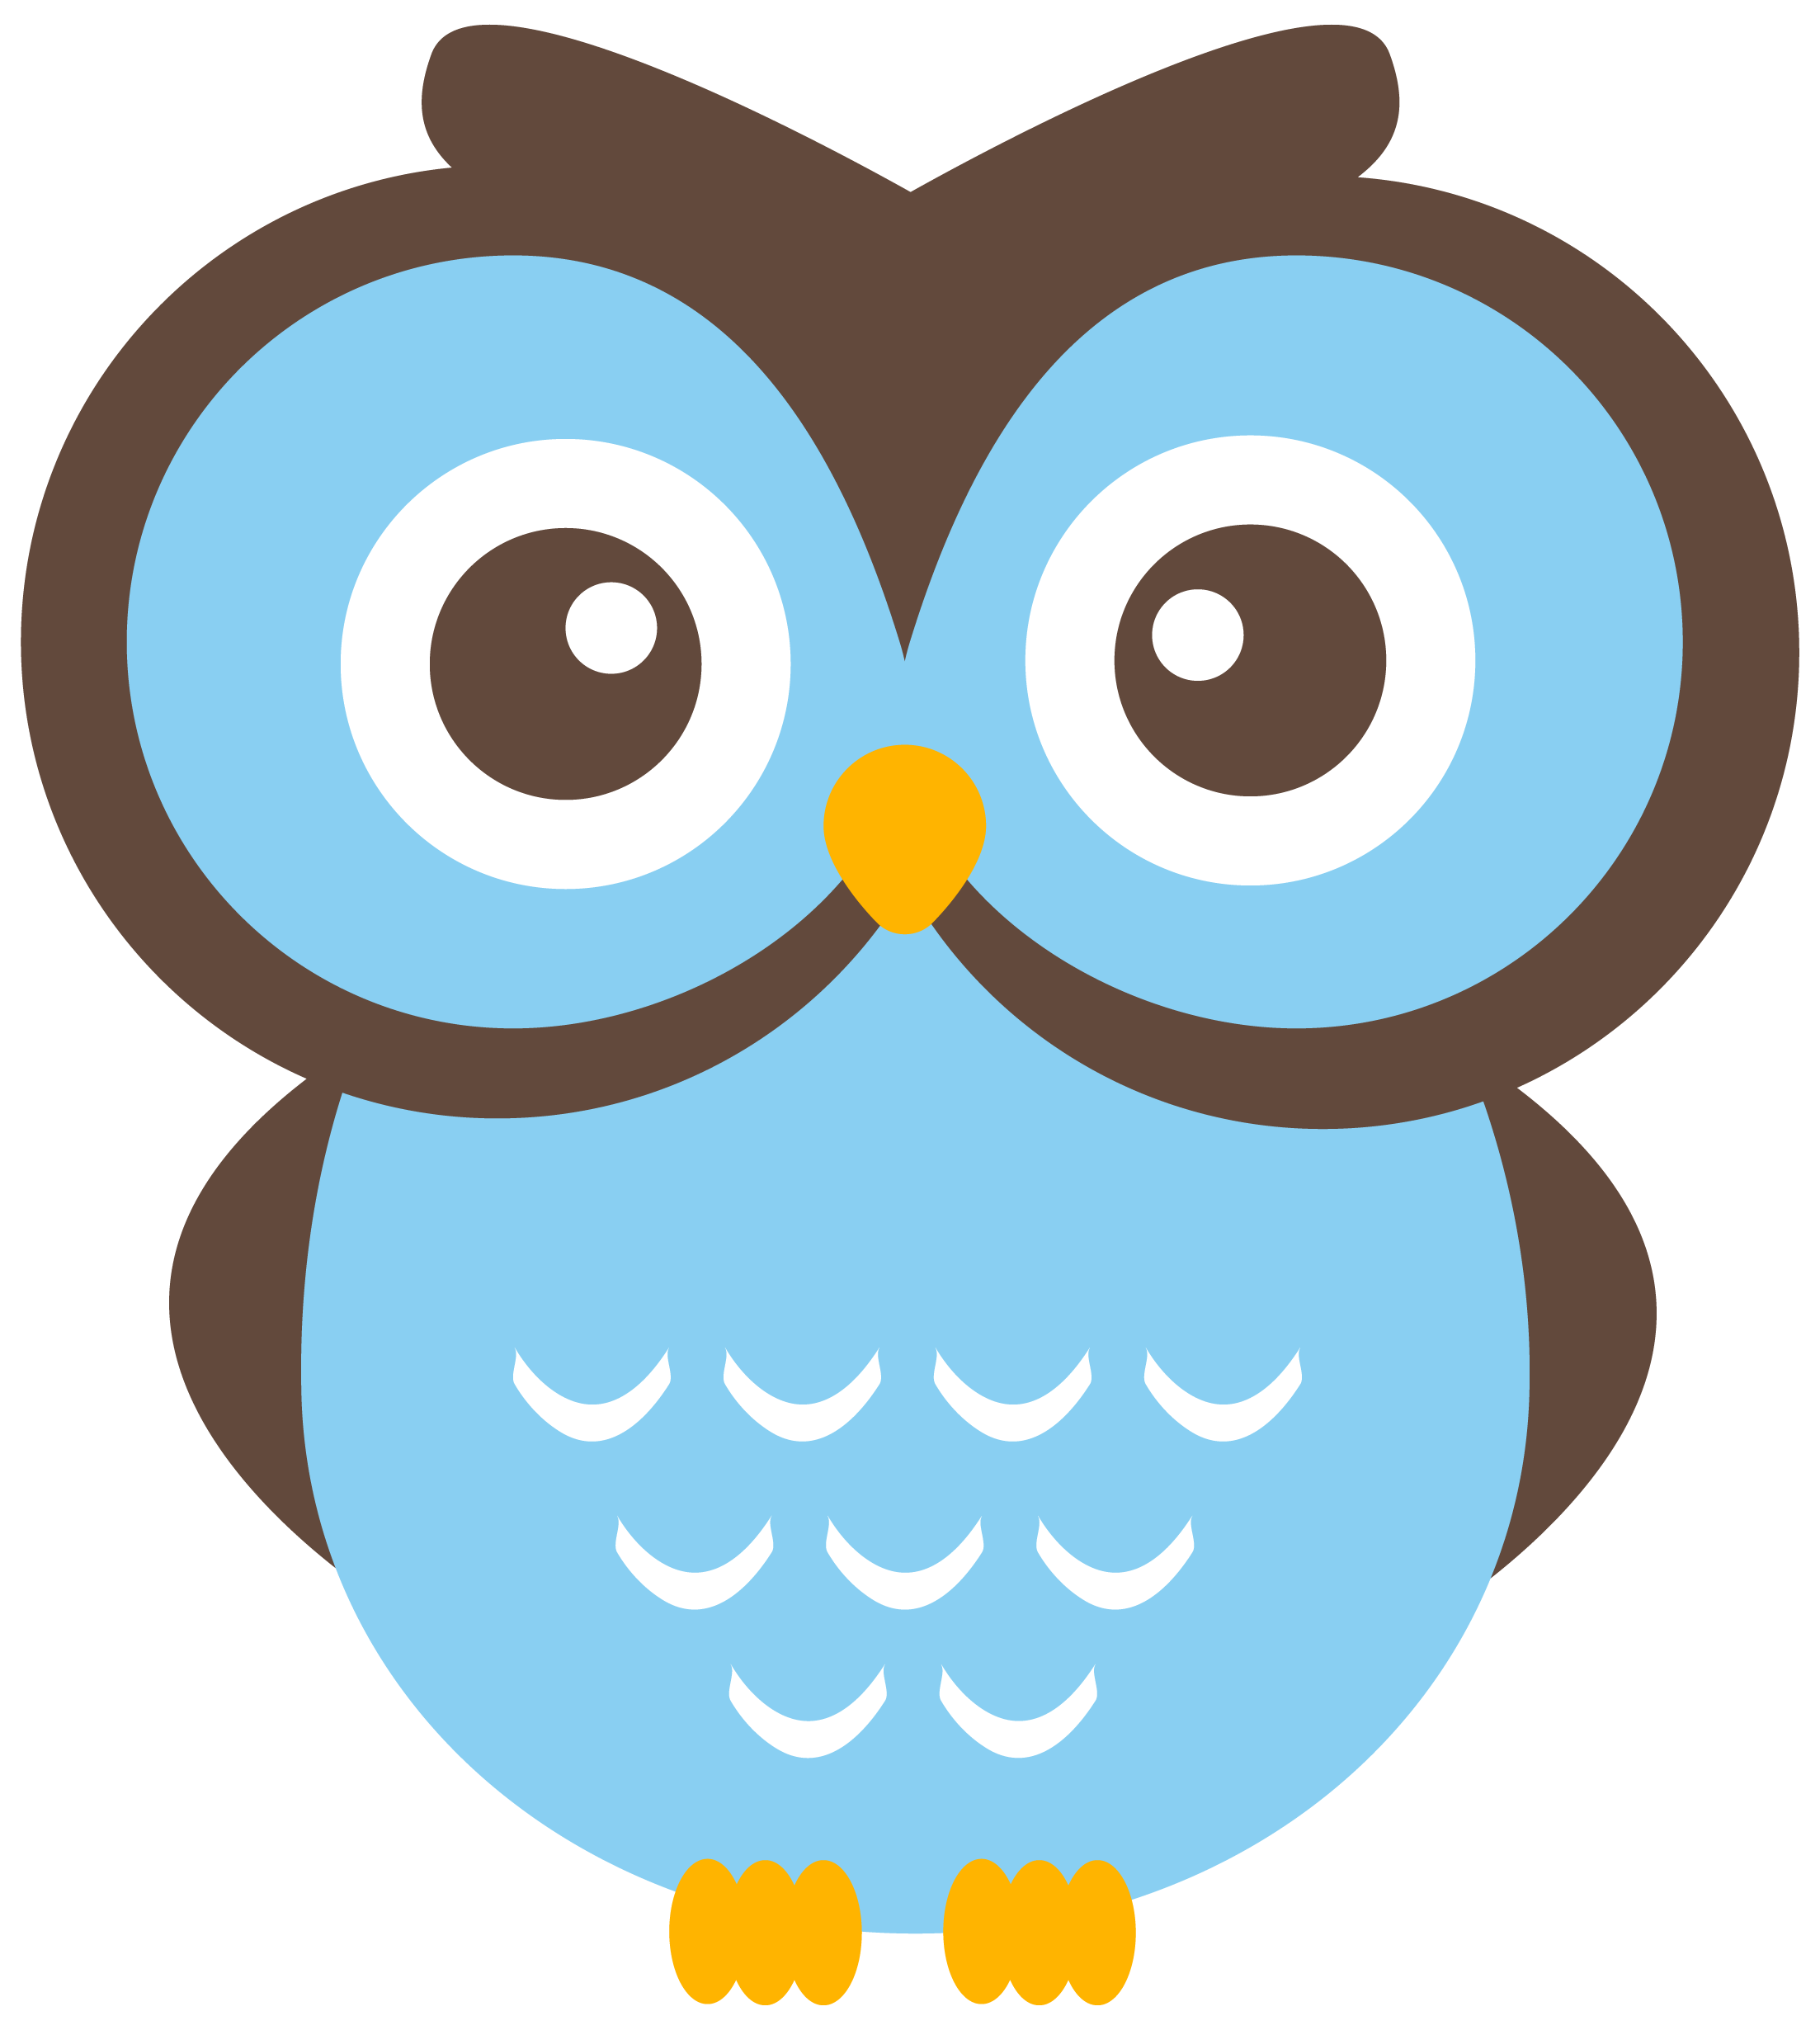 Owls on owl clip art owl and cartoon owls image #5 | Quilting ... picture royalty free stock